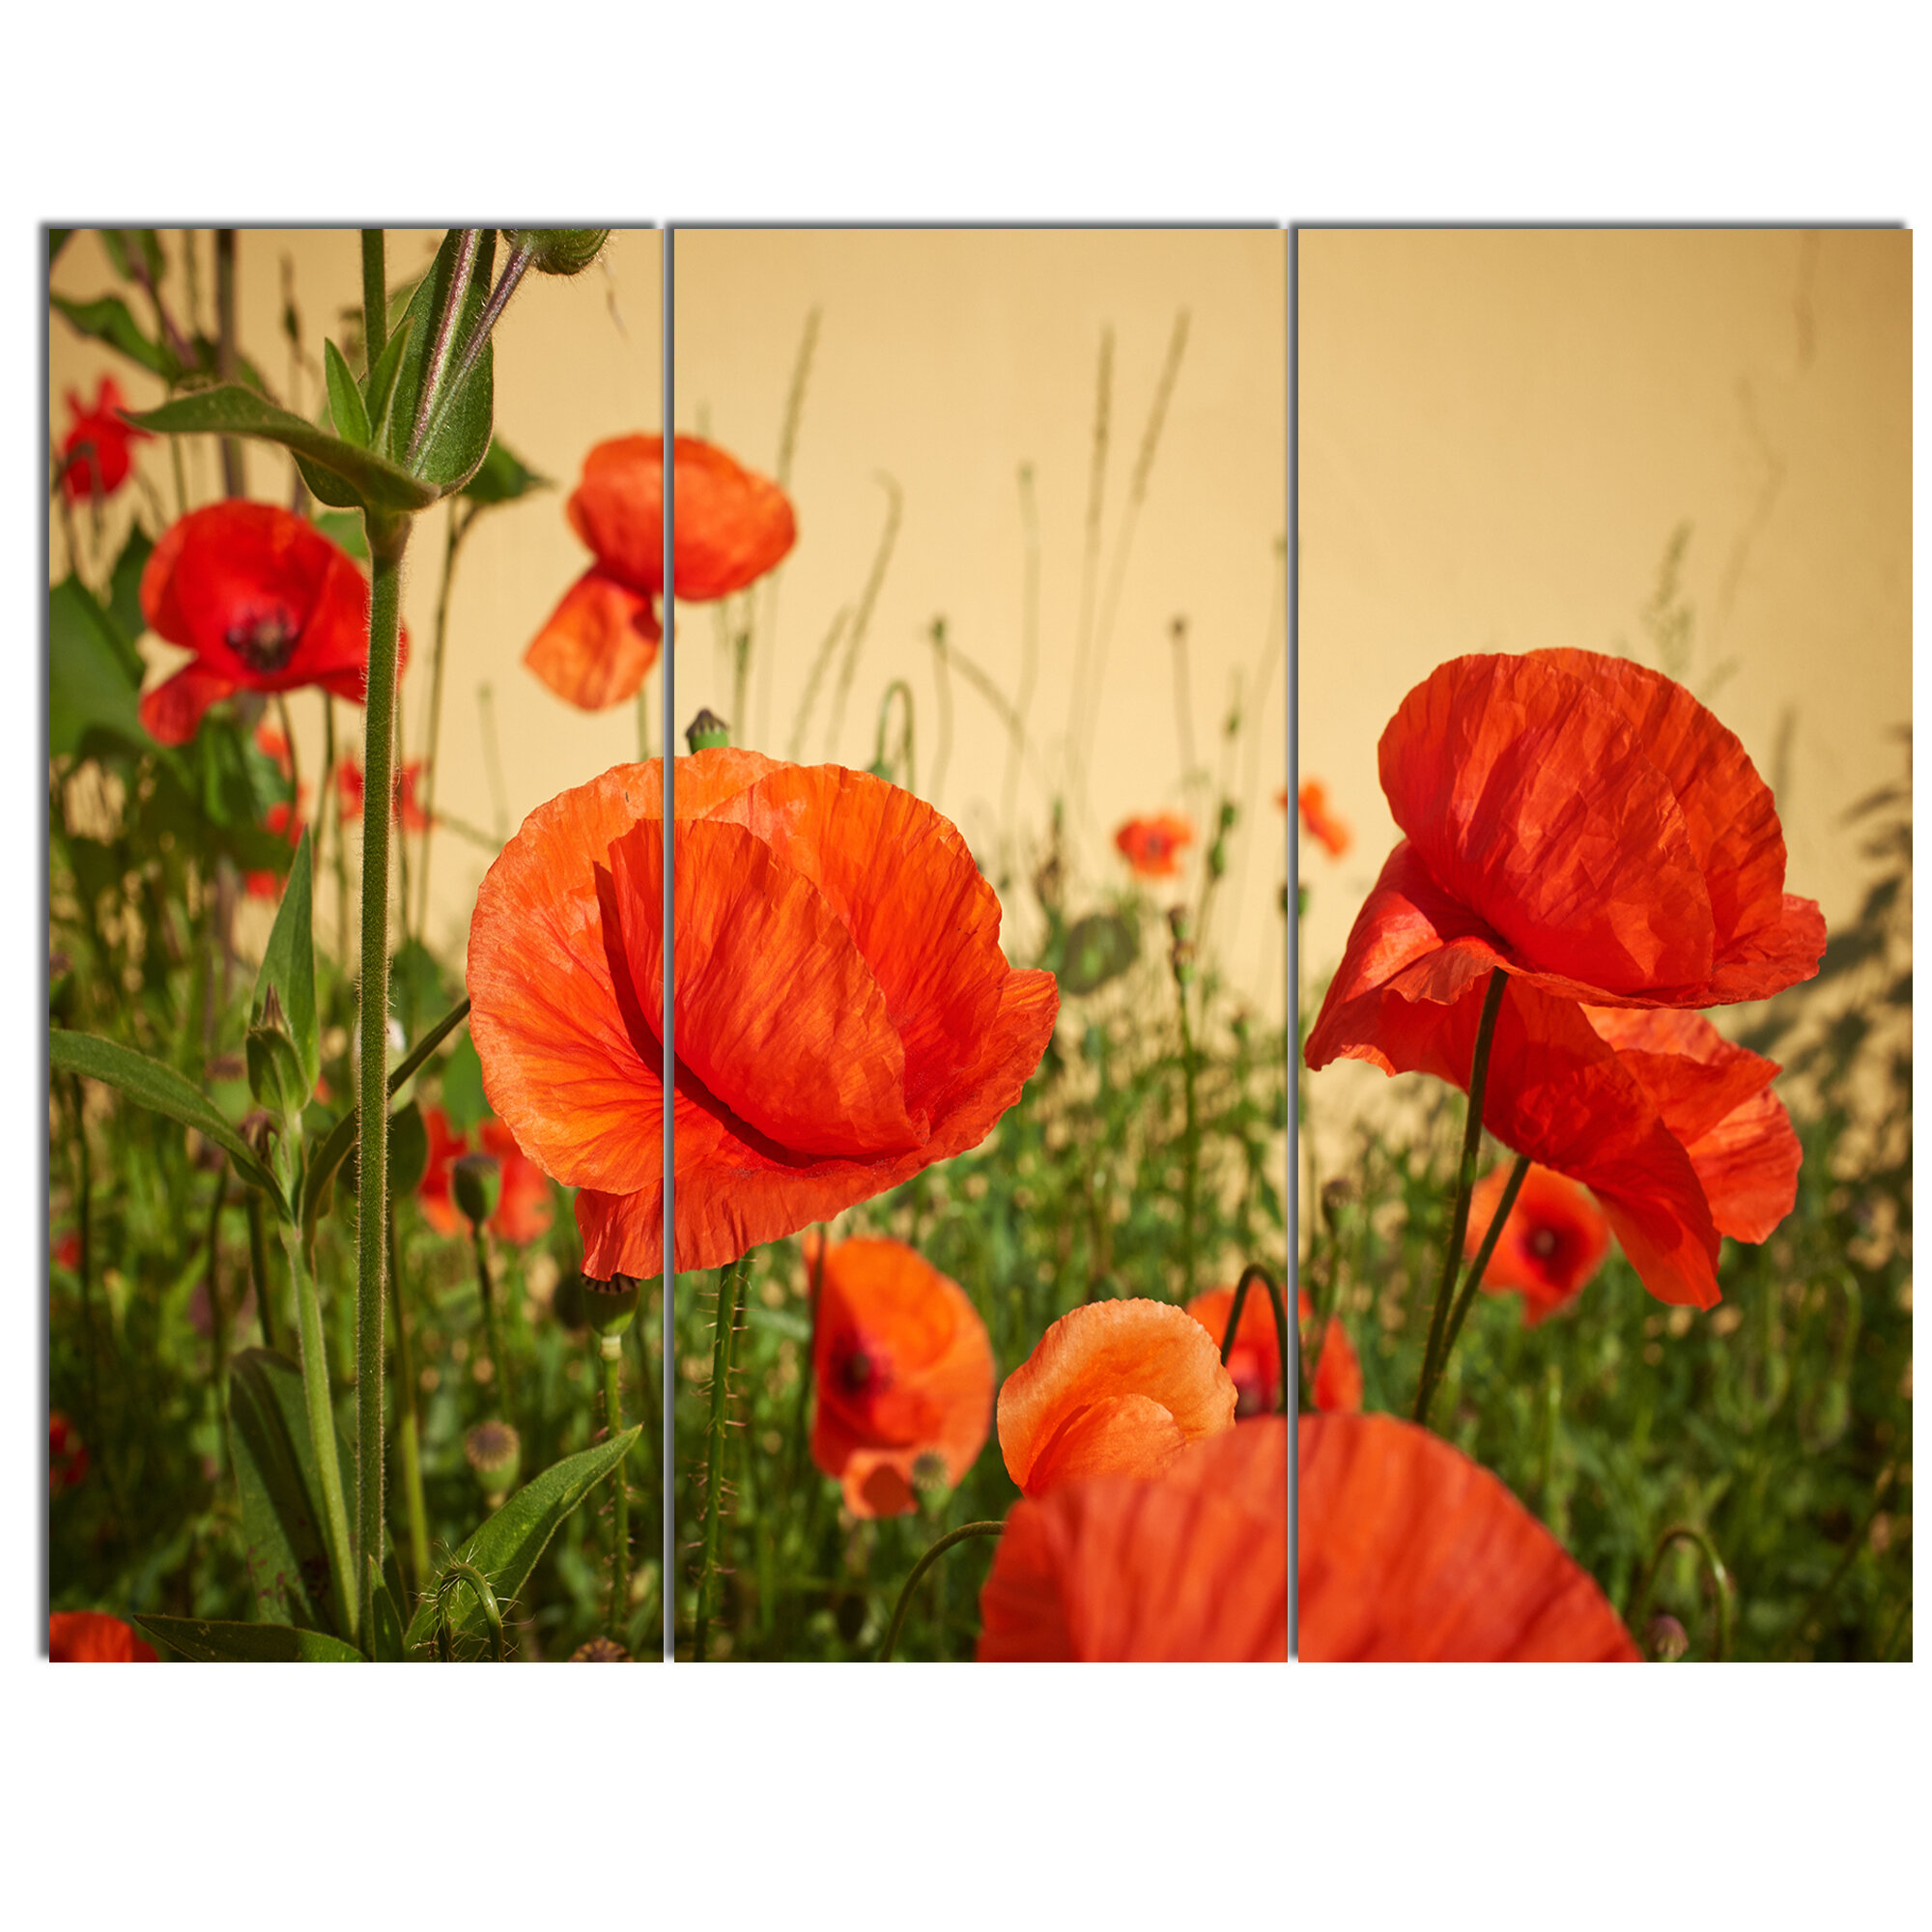 Designart Colorful Red Poppy Flower Field 3 Piece Photographic